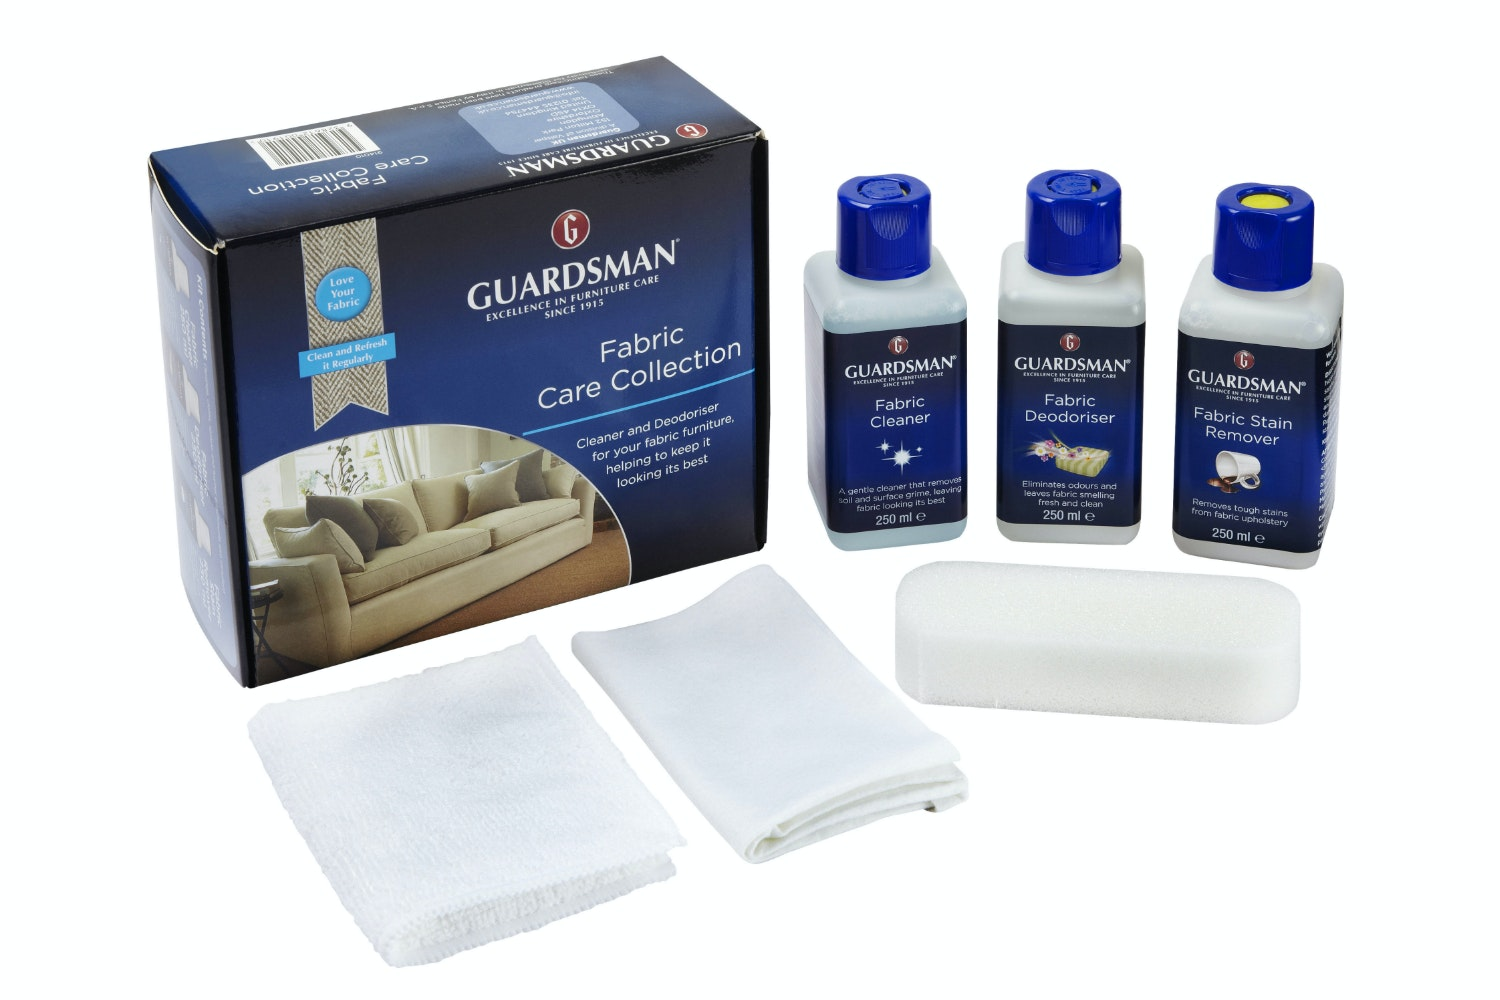 Guardsman Fabric Care Collection